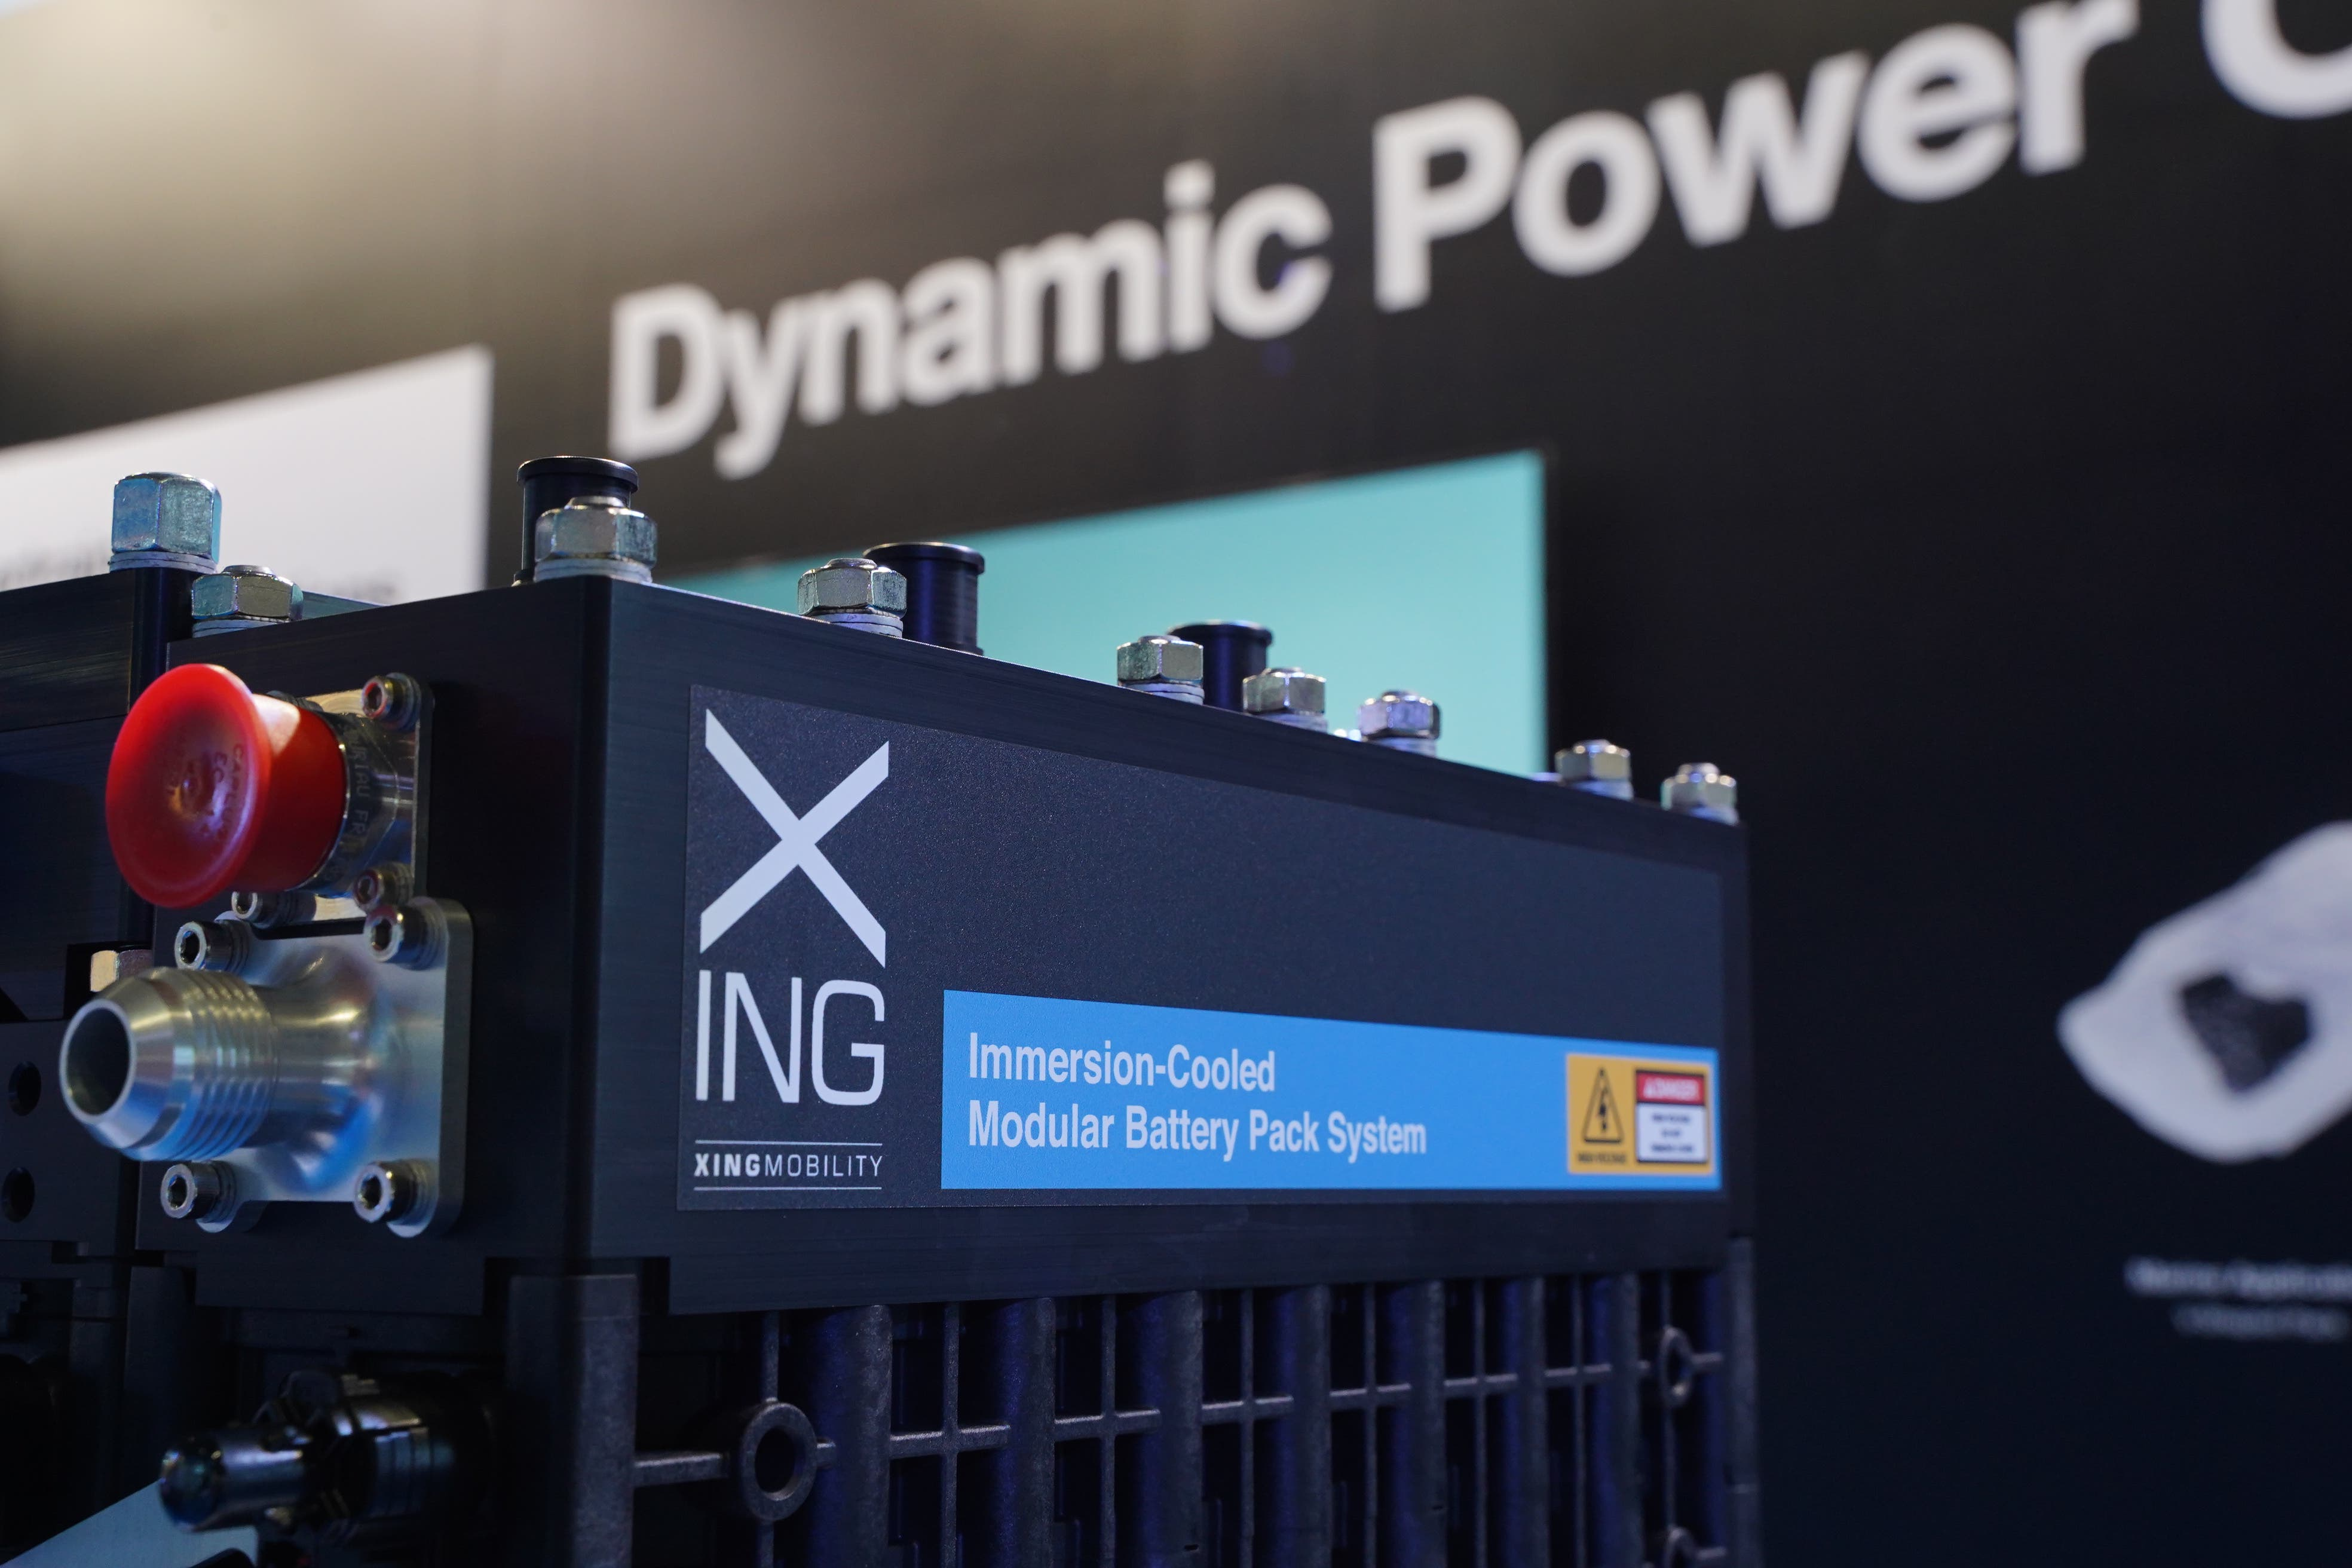 XING Mobility Introduces Immersion Cooled Modular Battery